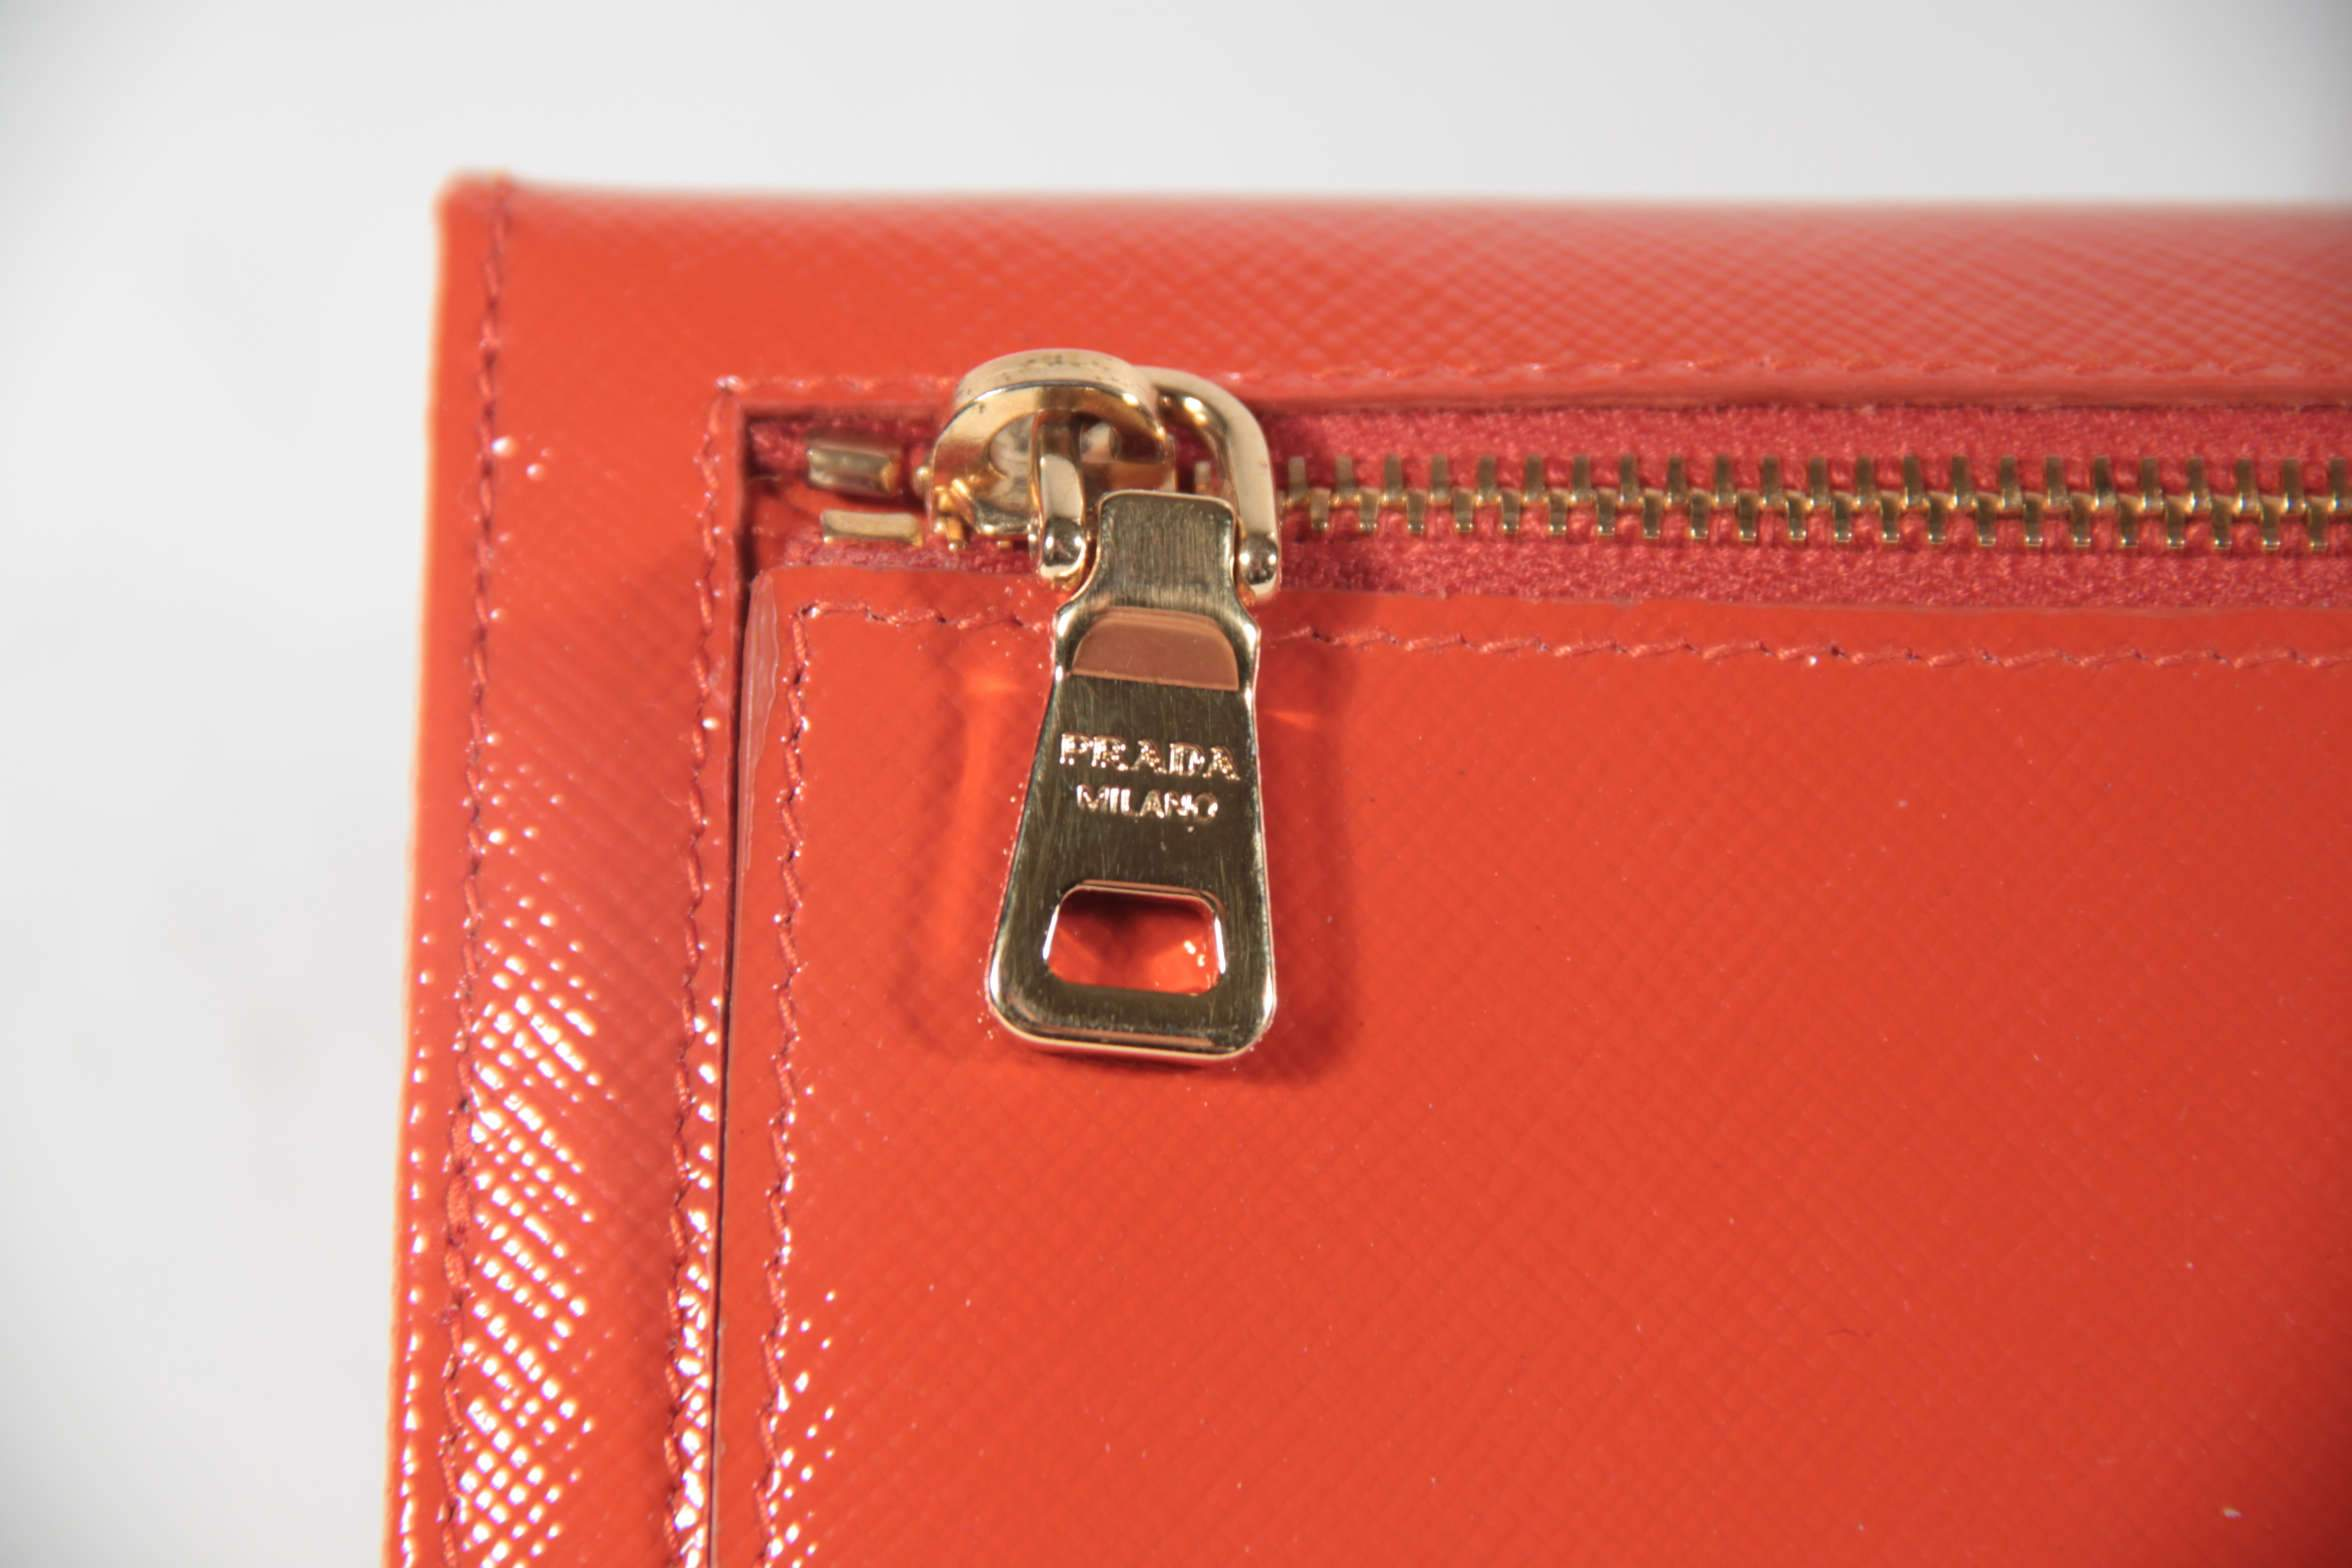 fd09a89b6a8327 Hardware on authentic bags is marked with the word Prada very cleanly  (counterfeit hardware is quite visible, apparently Prada's hardware is  quite difficult ...